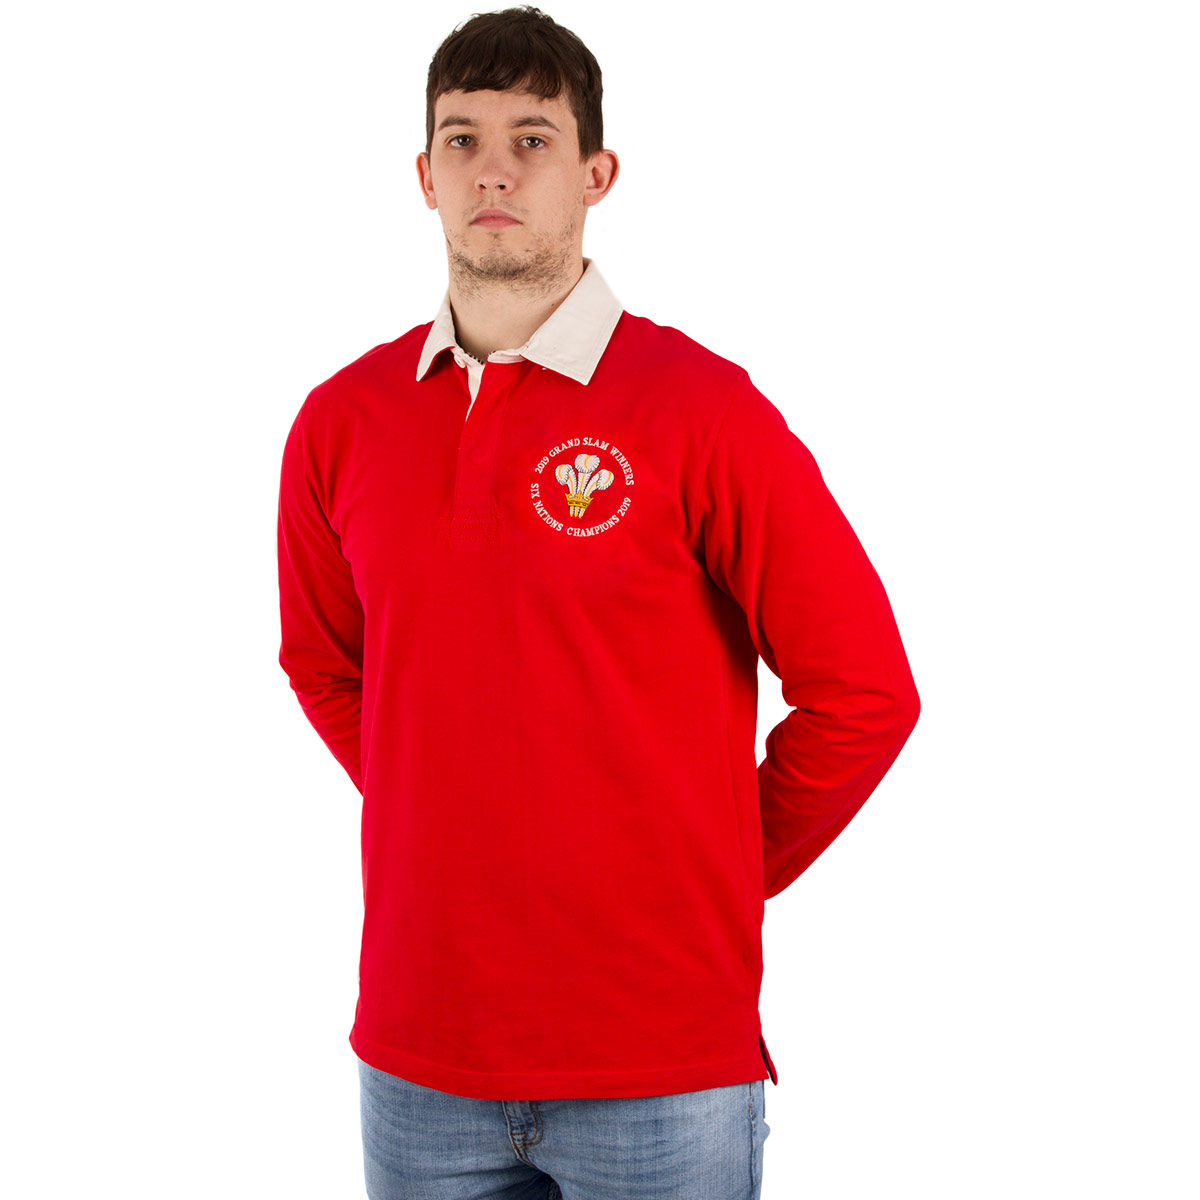 3189f254cd3 Wales 6 Nations/Grand Slam Winners Vintage Rugby Shirt L/S - Model 1